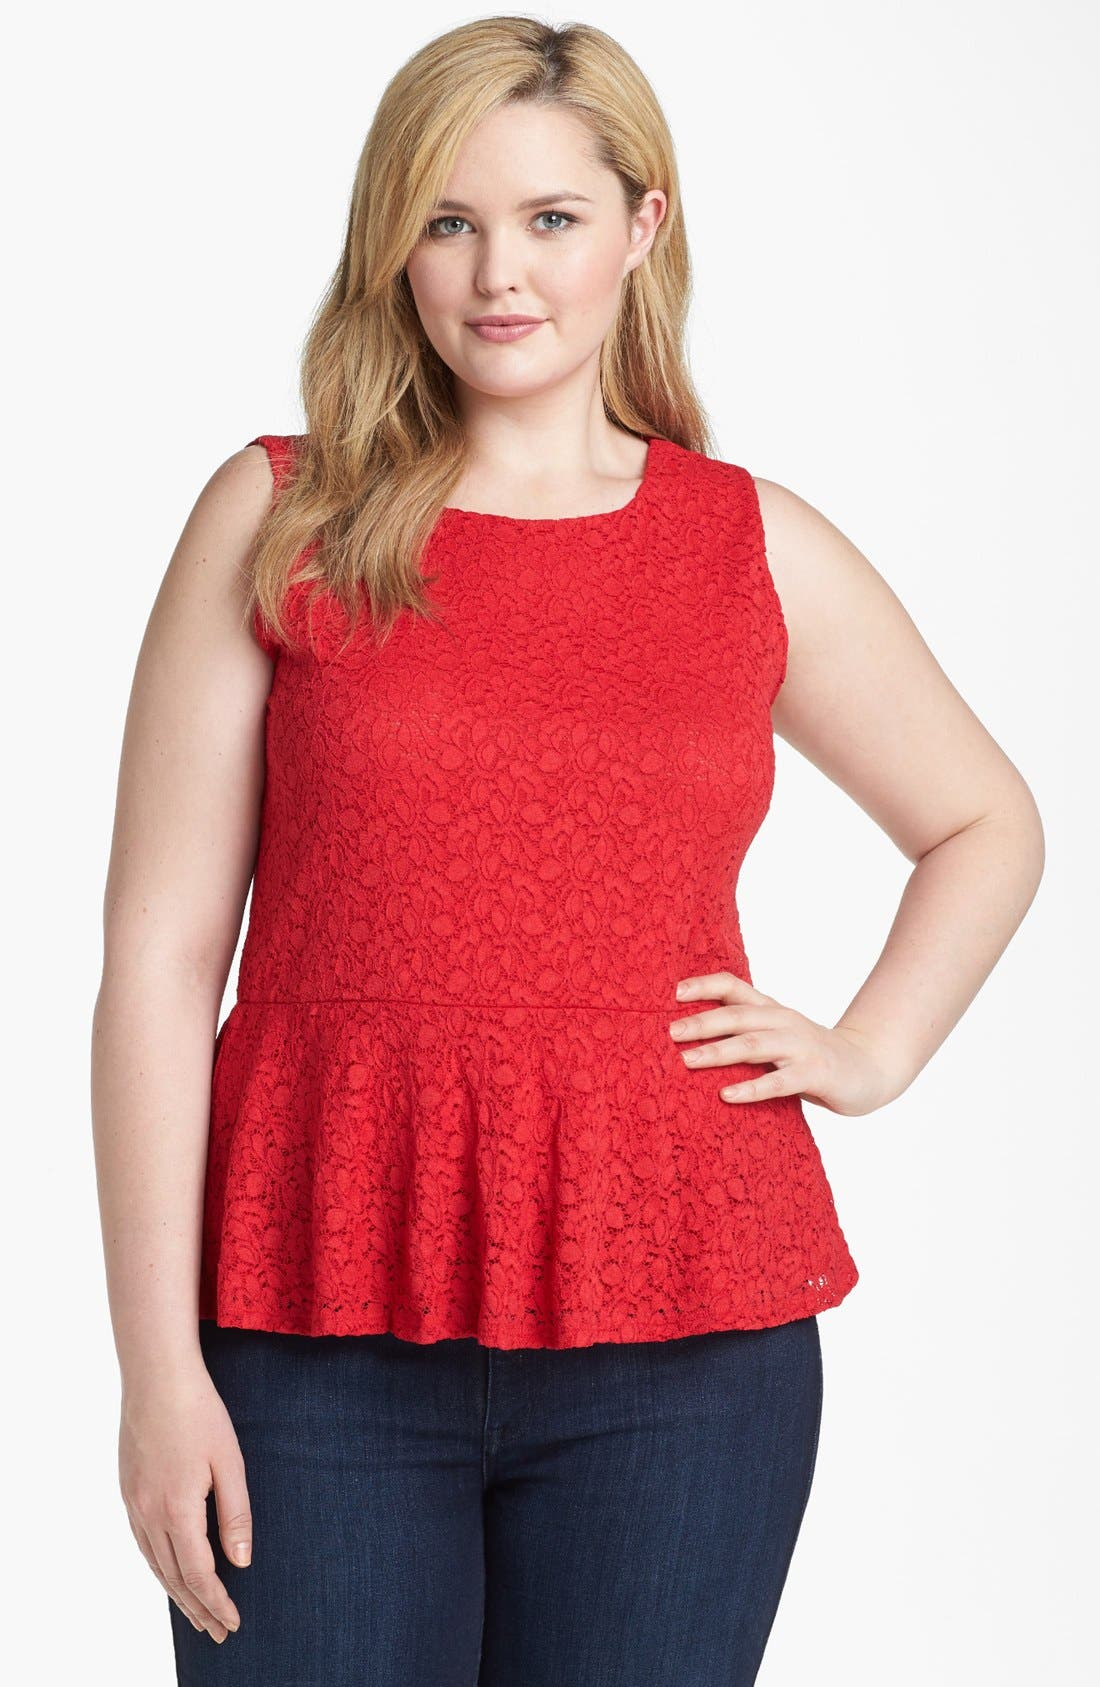 Alternate Image 1 Selected - Vince Camuto Lace Peplum Top (Plus Size)